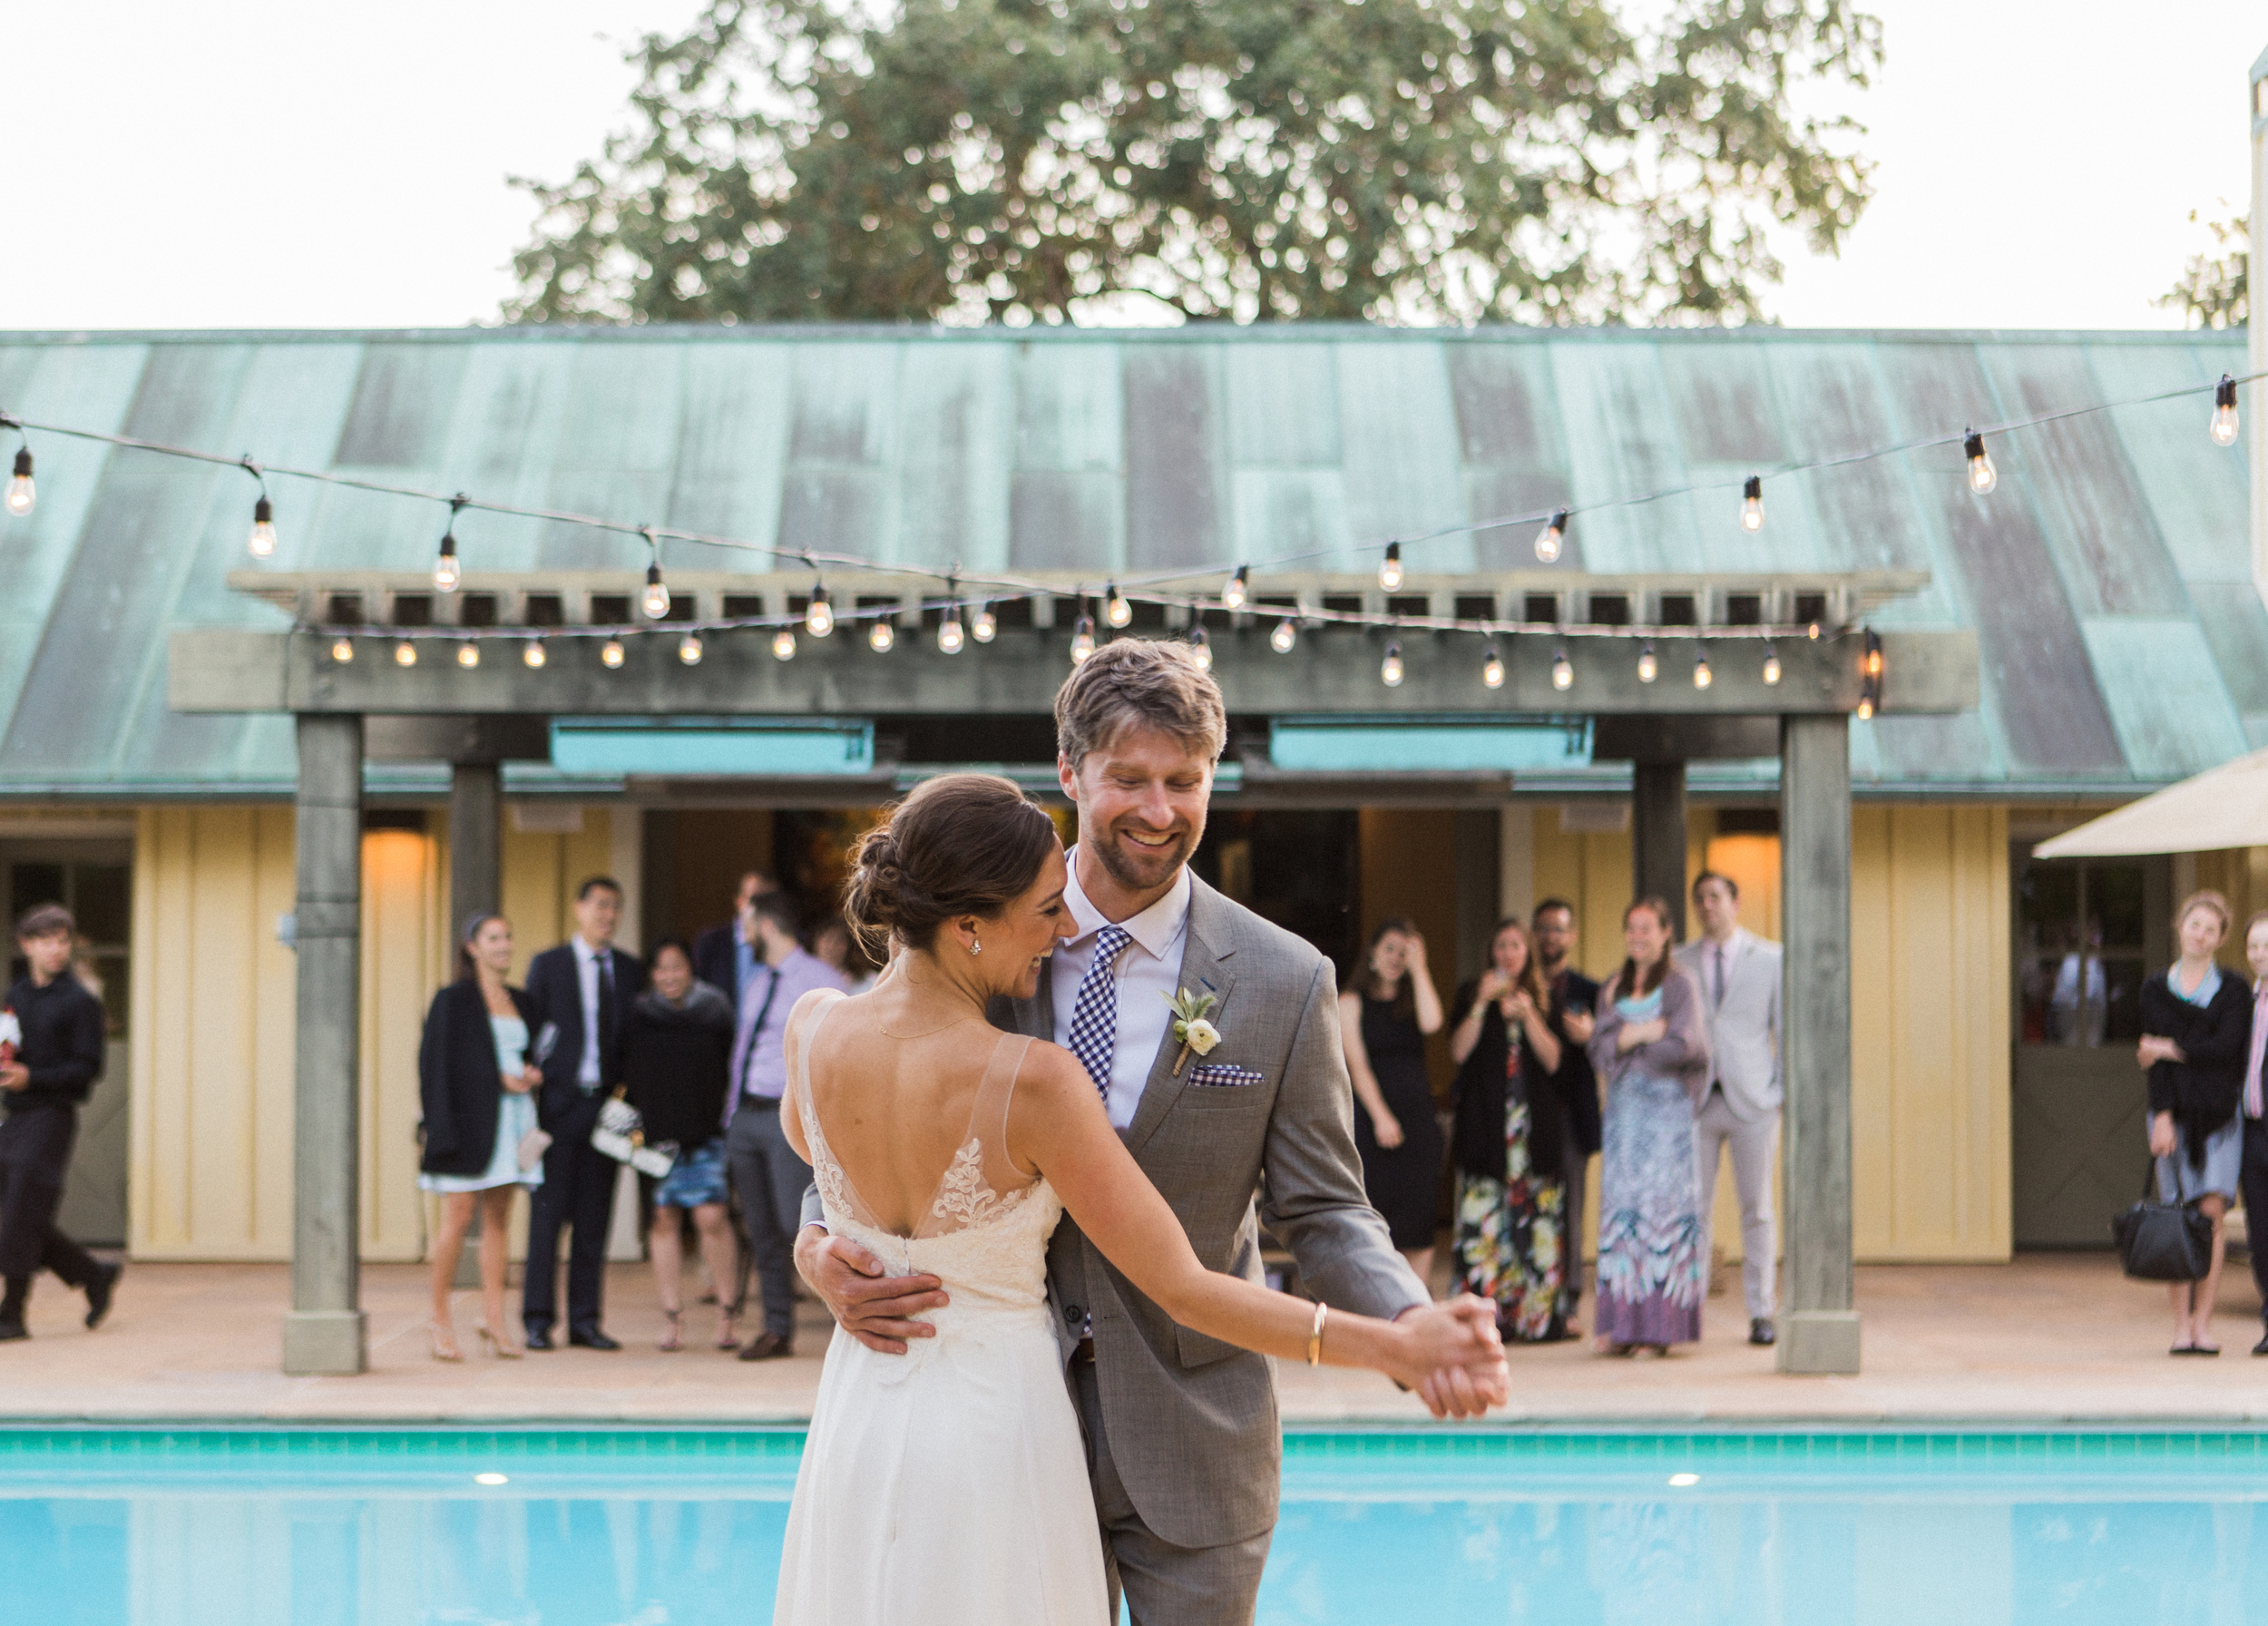 With all the other wedding plans, our first dance was a bit of an after-thought. We made the most of it though, laughed a lot, and were thankful we chose a short and sweet song,  Lovin' In My Baby's Eyes  by Taj Mahal.